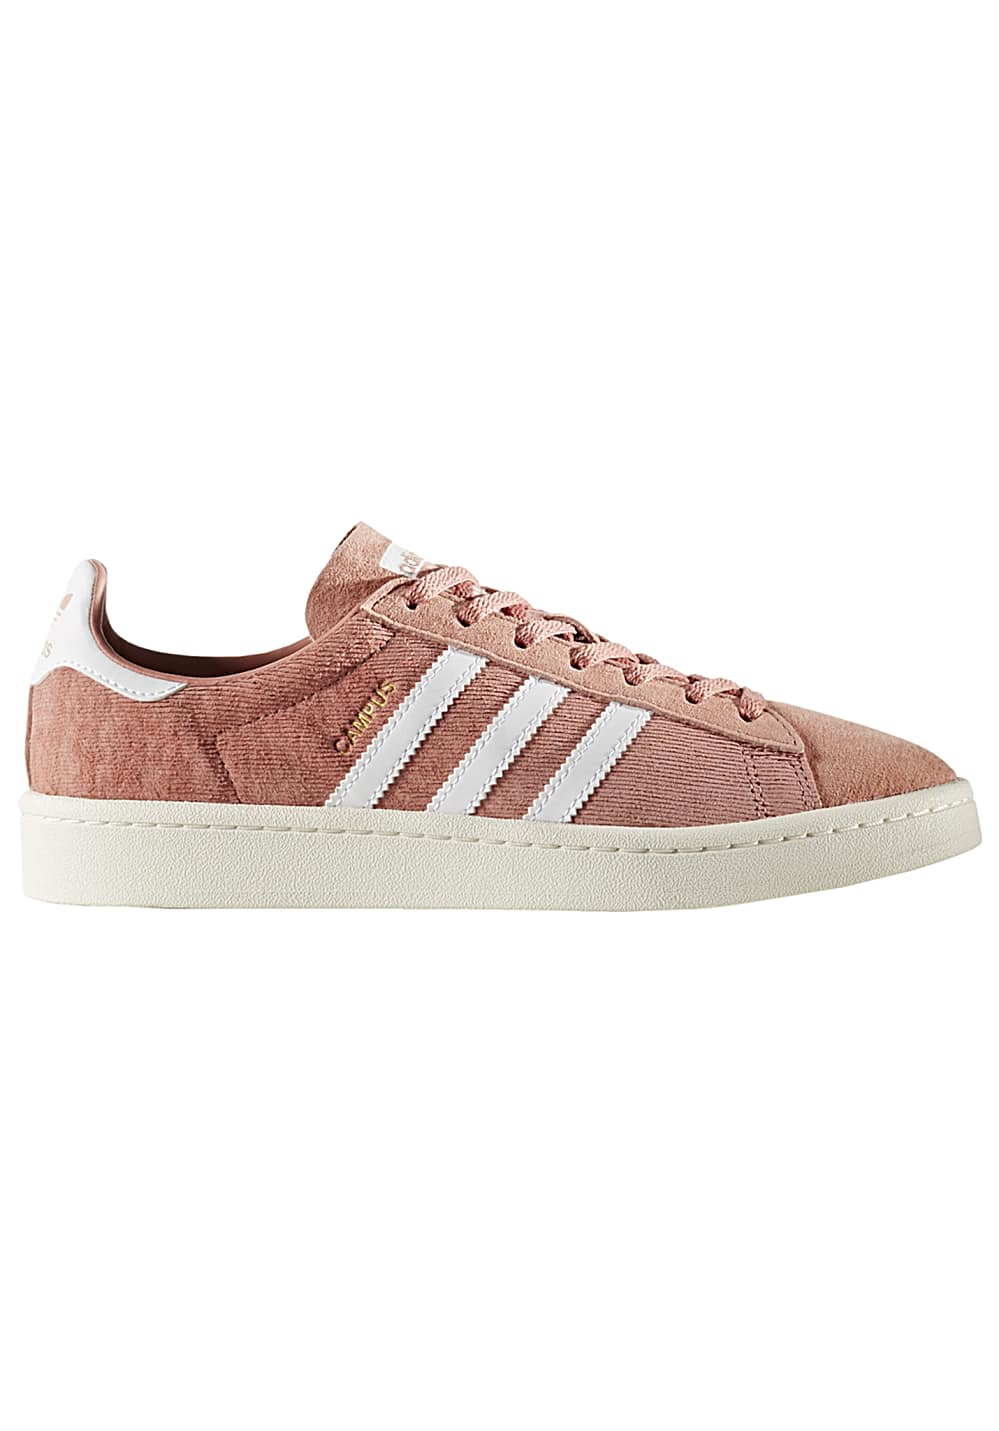 get cheap e9614 fcd8c Next. -30%. ADIDAS ORIGINALS. Campus - Sneakers voor Dames